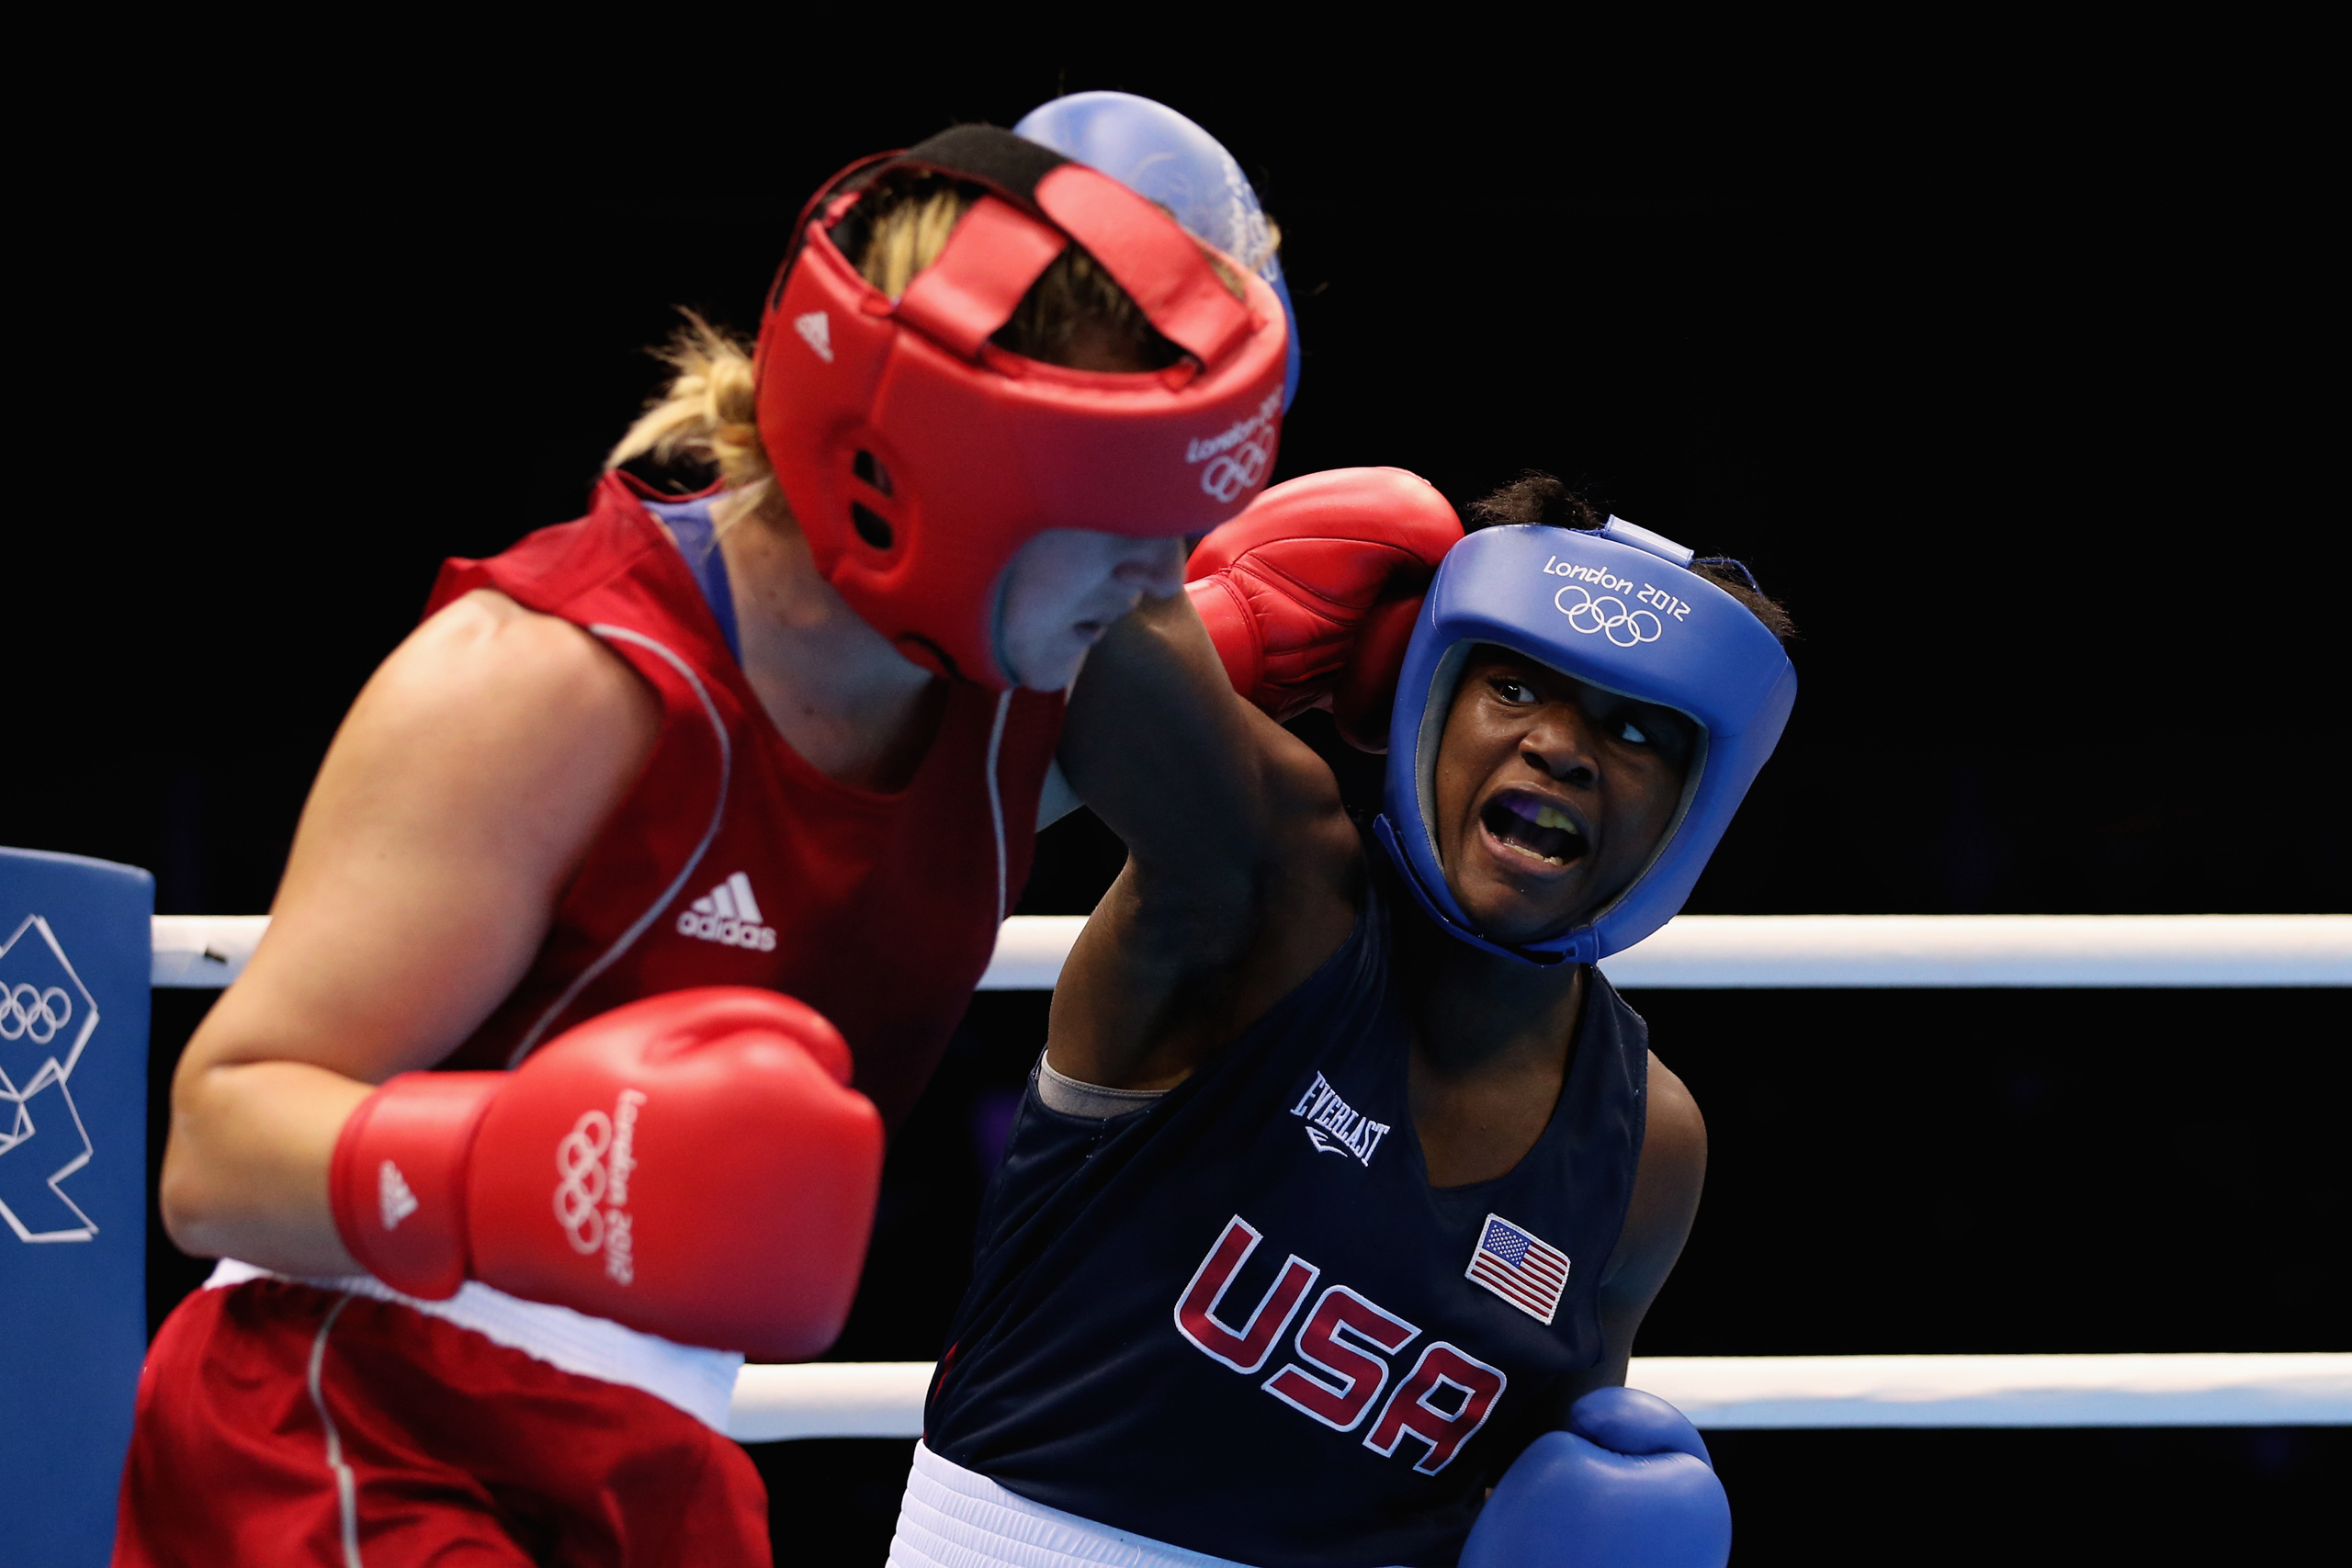 <strong>Claressa Shields, Boxing, USA</strong>The Flint, Mich., native won gold in the 165-lb. division in 2012 and is favored to do it again in Rio.